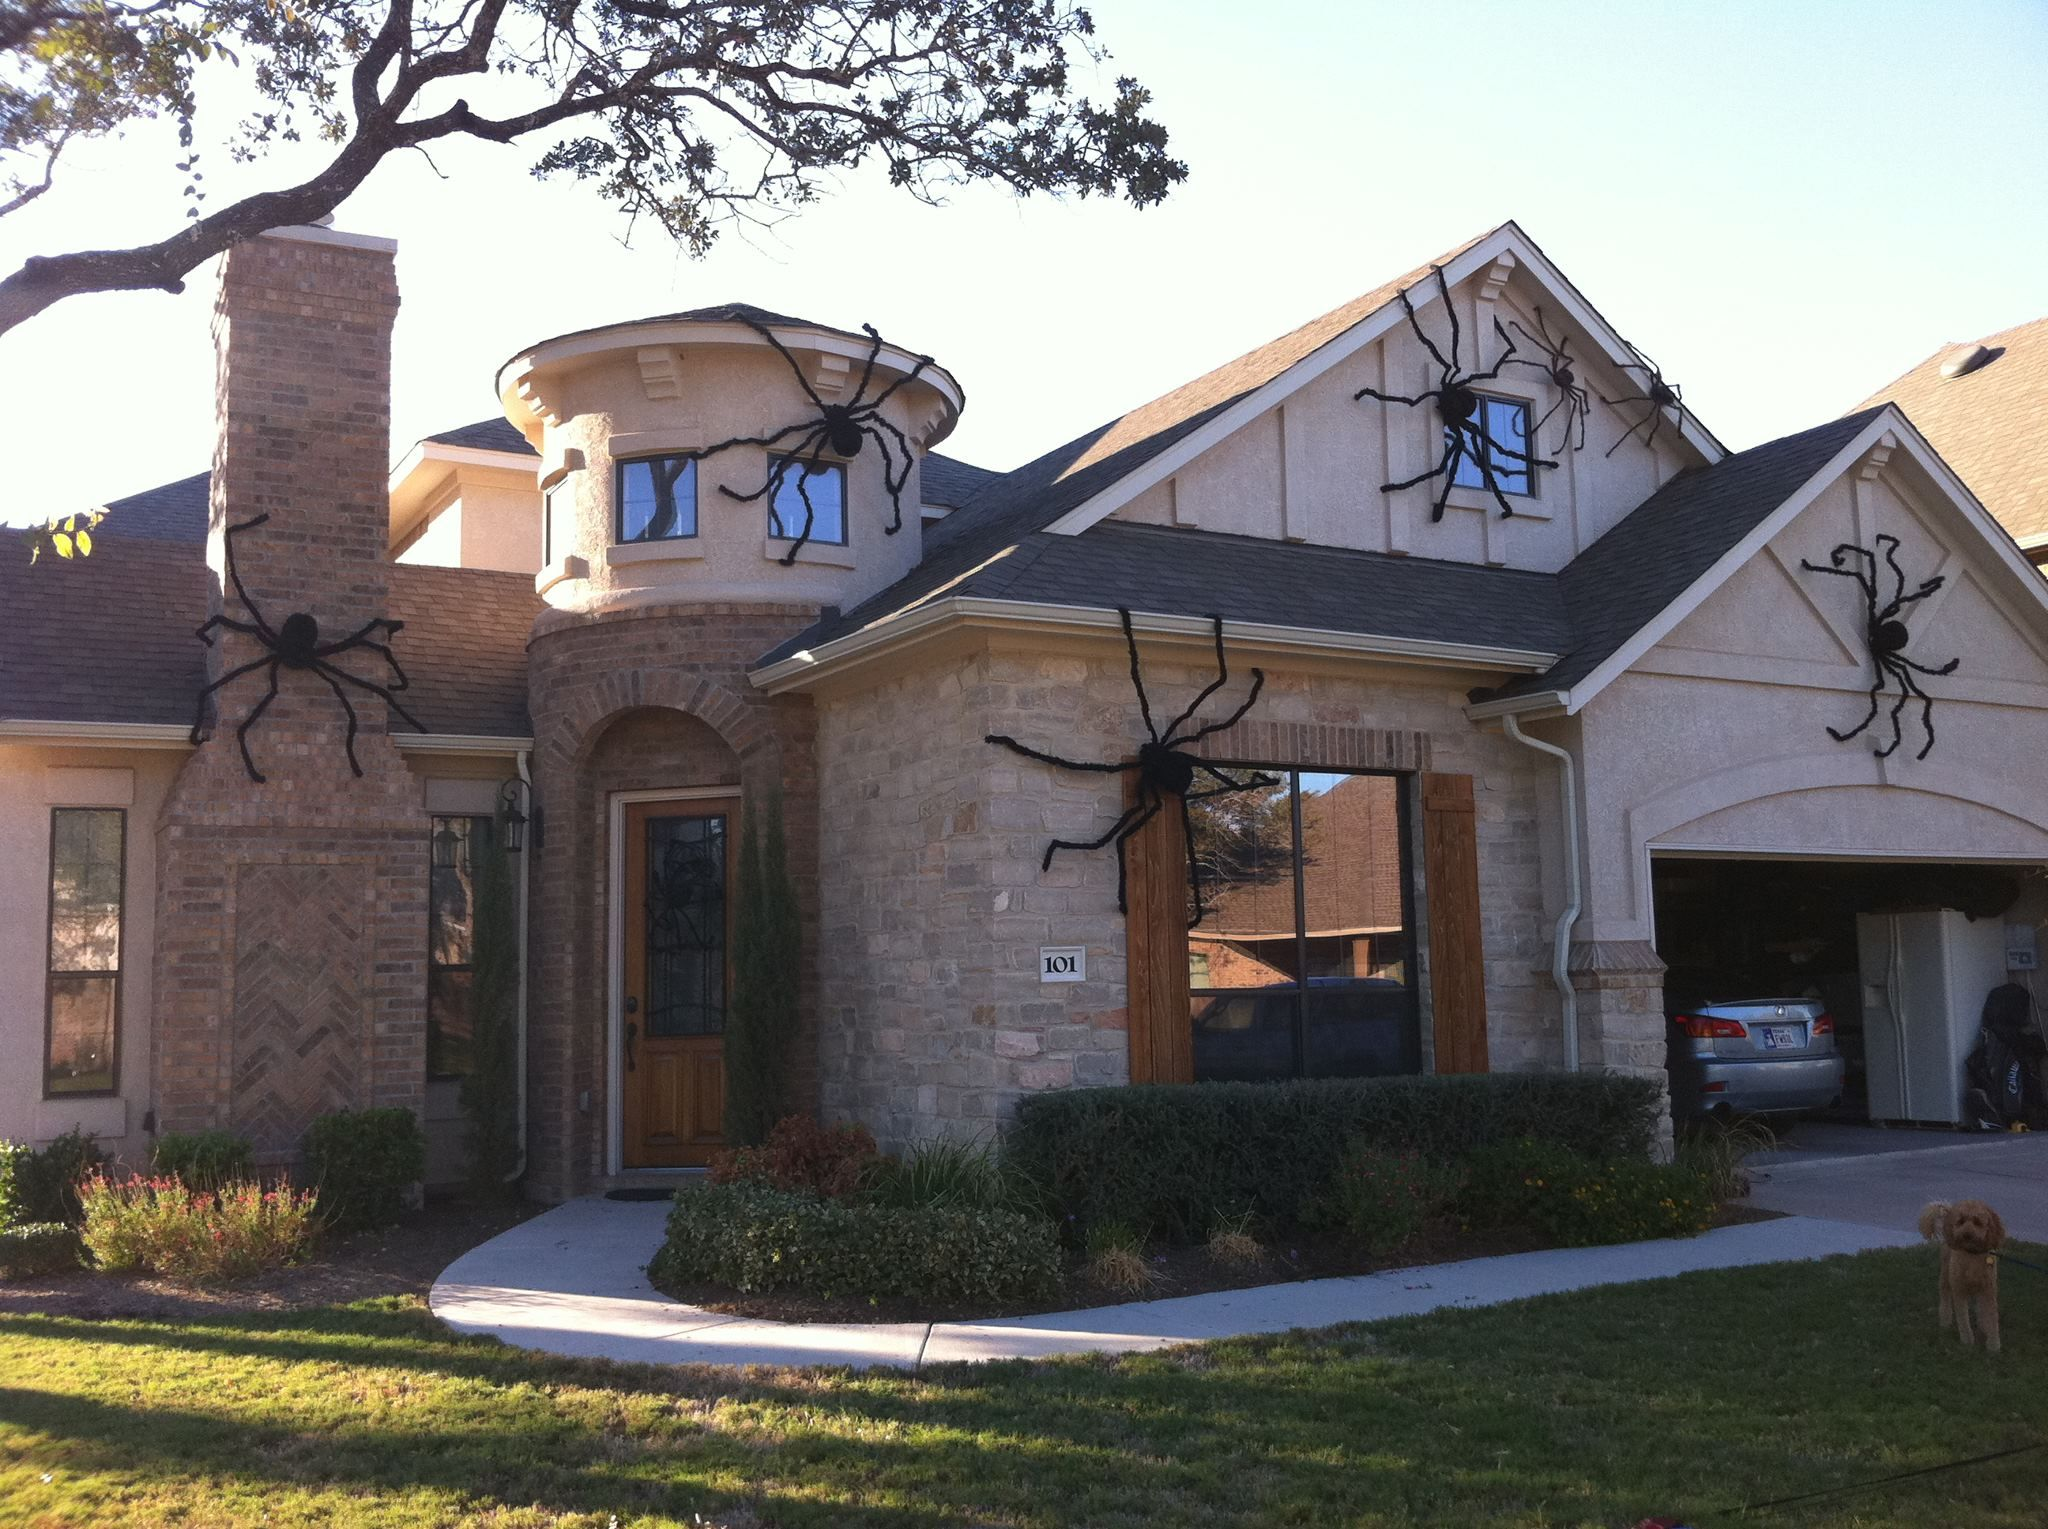 Giant house spider decorations Halloween outdoor